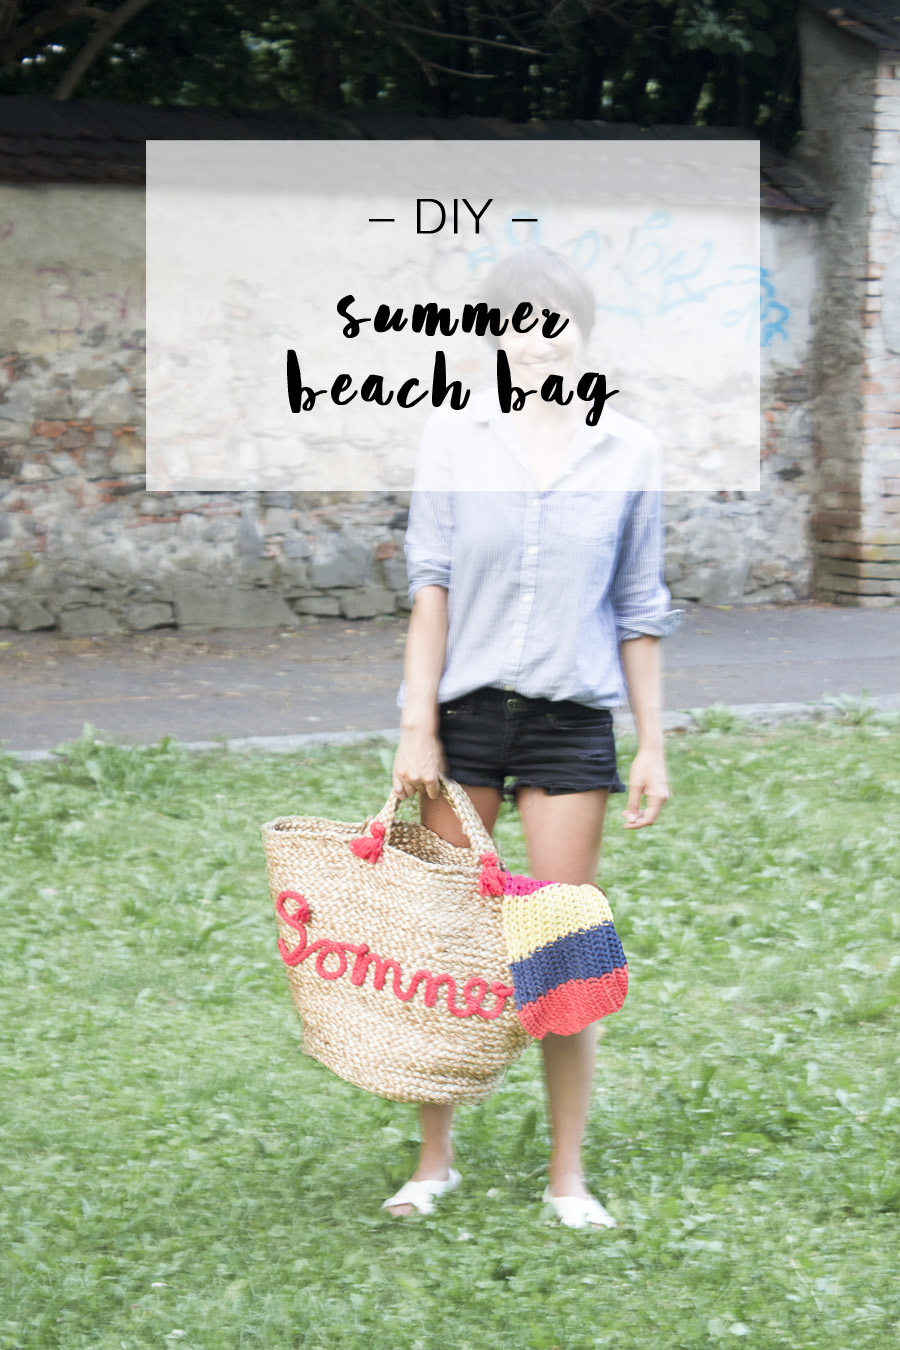 DIY-summer-beach-bag-look-what-i-made